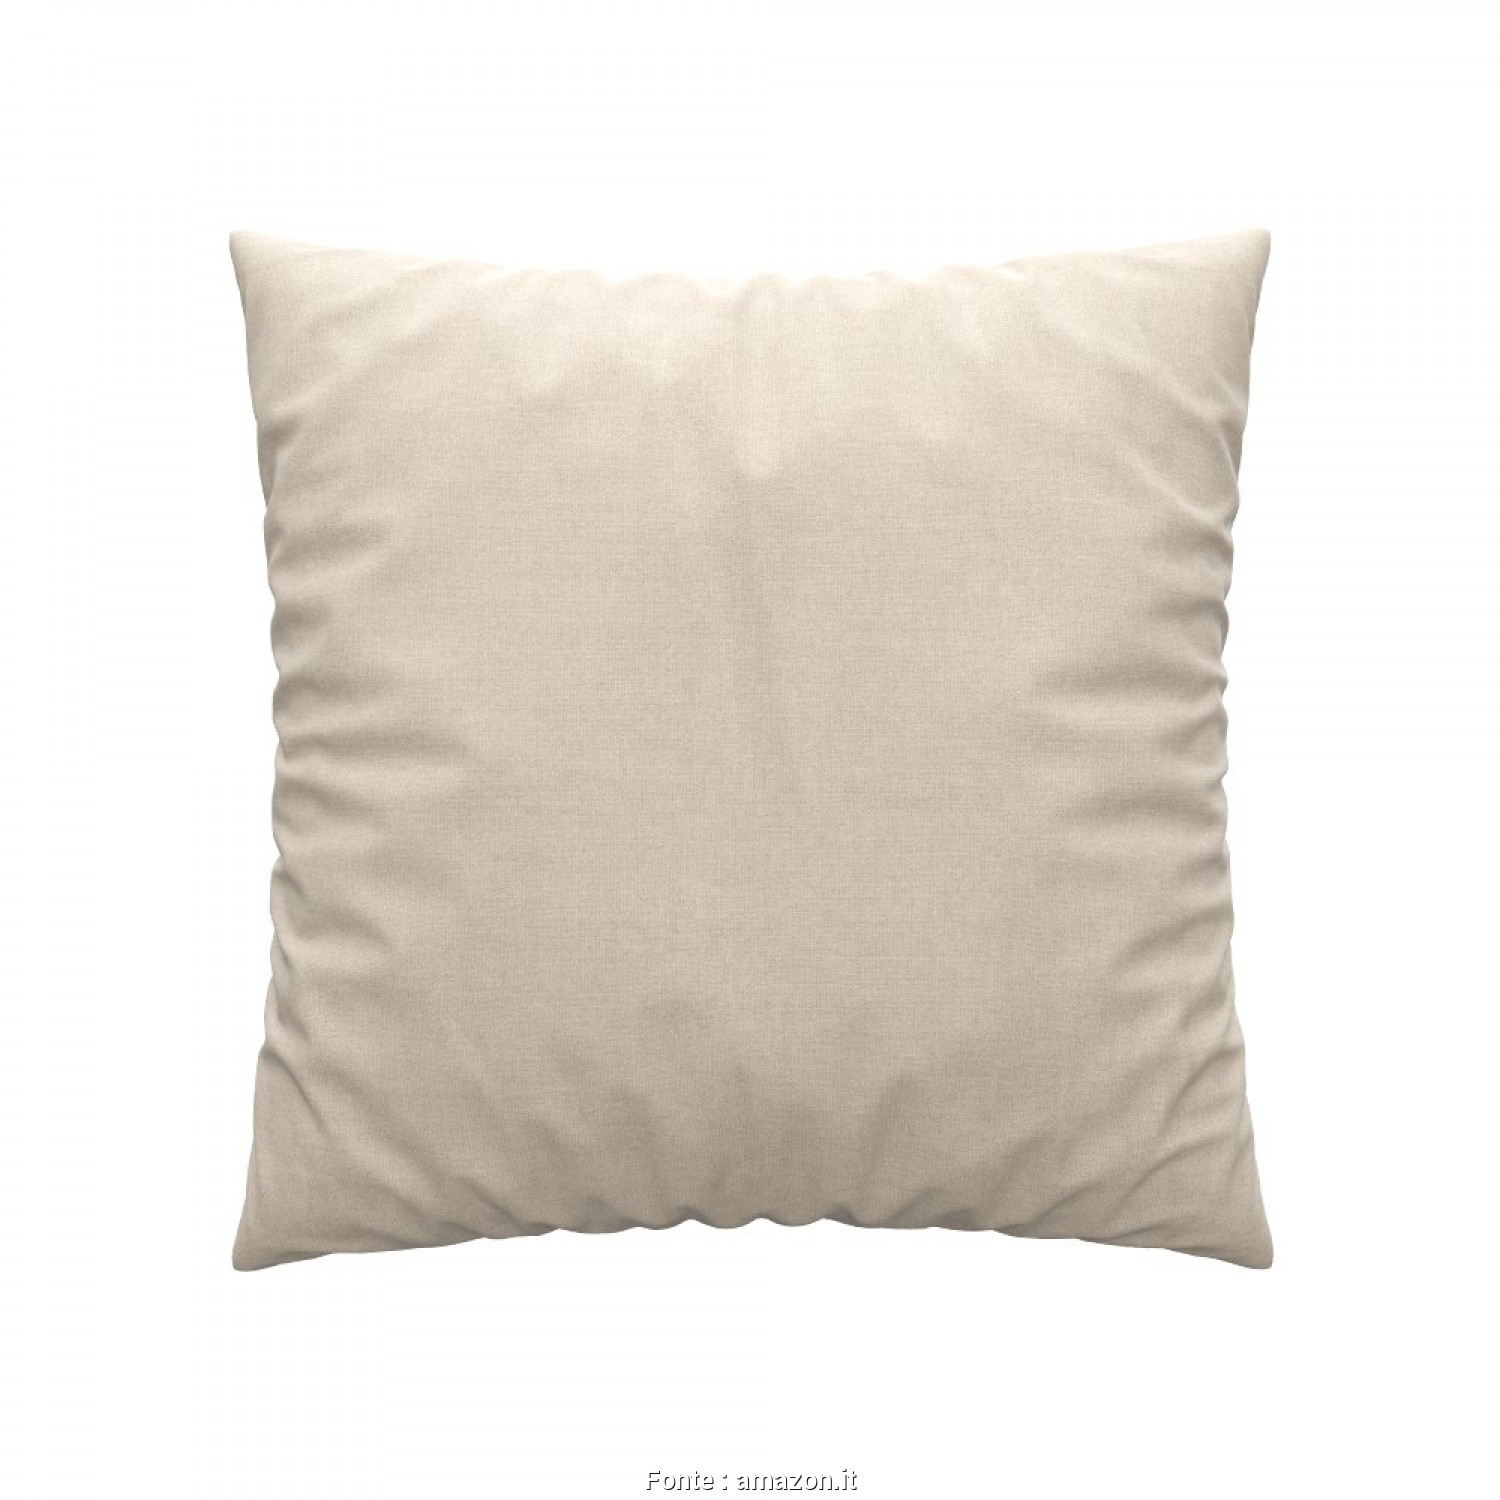 Cuscini Decorativi, Divano Ikea, Costoso Soferia, Ikea Fodere, Cuscino 50X50, Elegance Creme: Amazon.It: Casa E Cucina